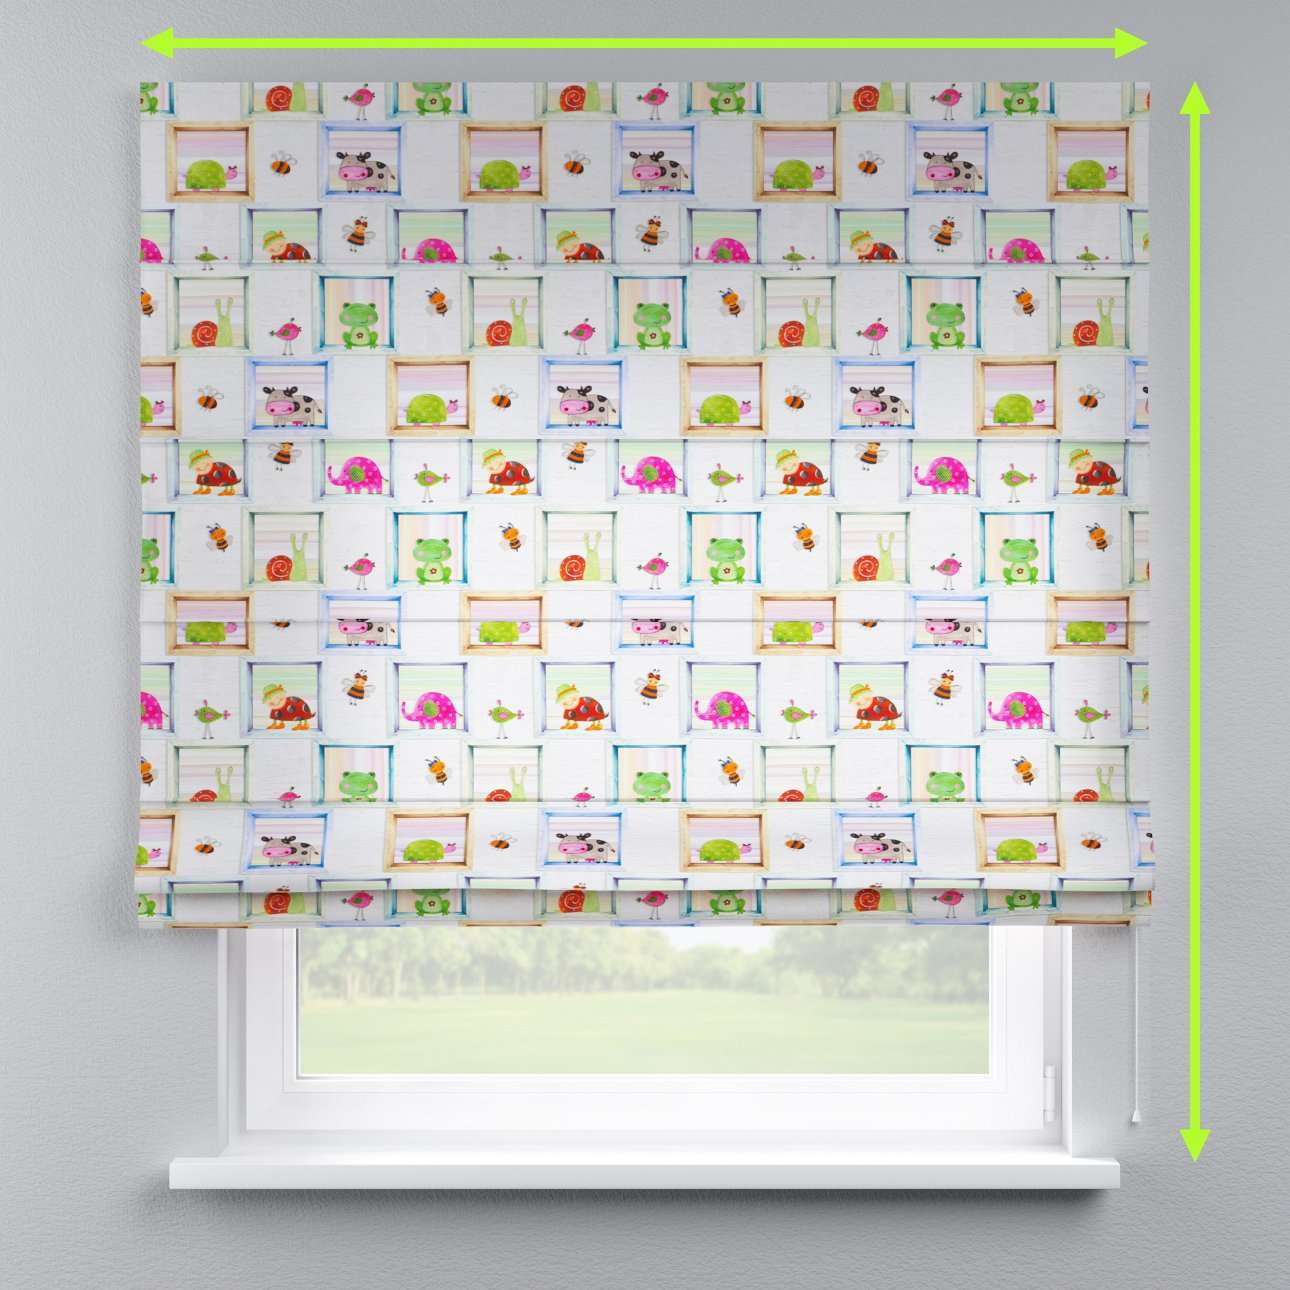 Capri roman blind in collection Apanona, fabric: 151-04